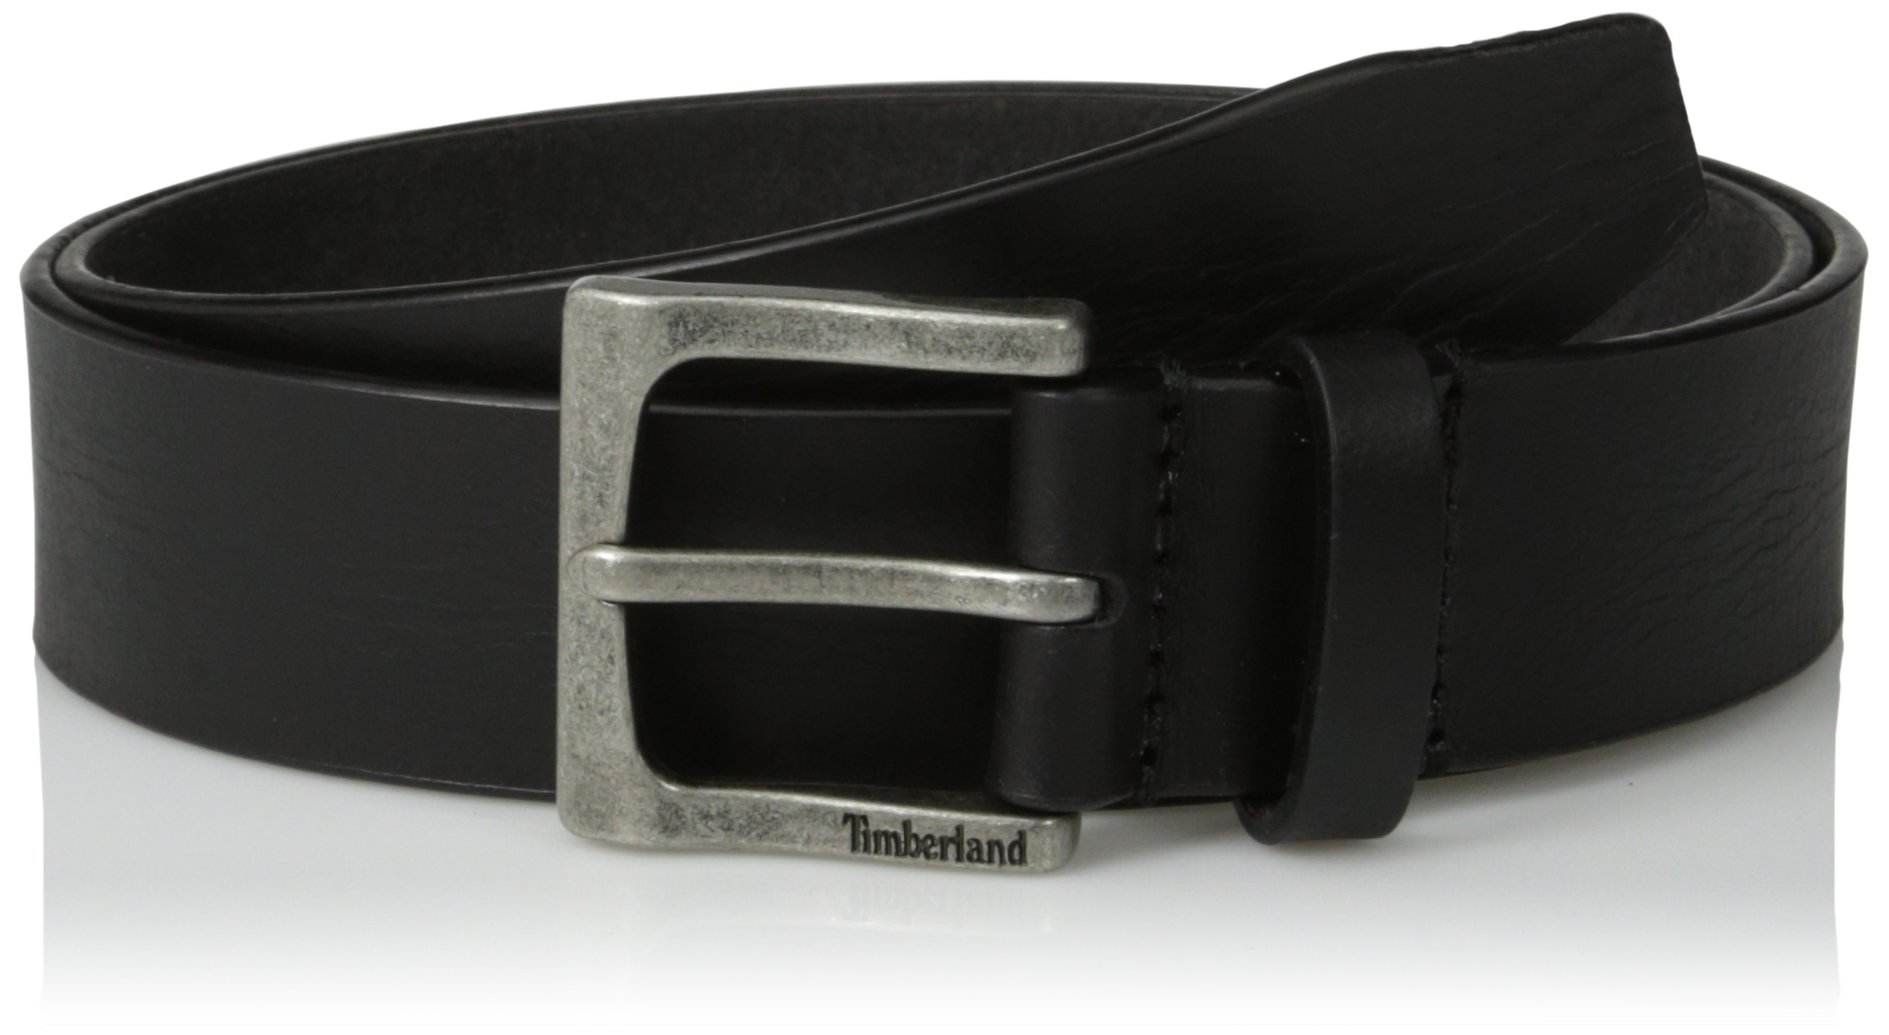 Timberland Men's Classic Leather Jean Belt 1.4 Inches Wide (Big & Tall Sizes Available), Black, 36